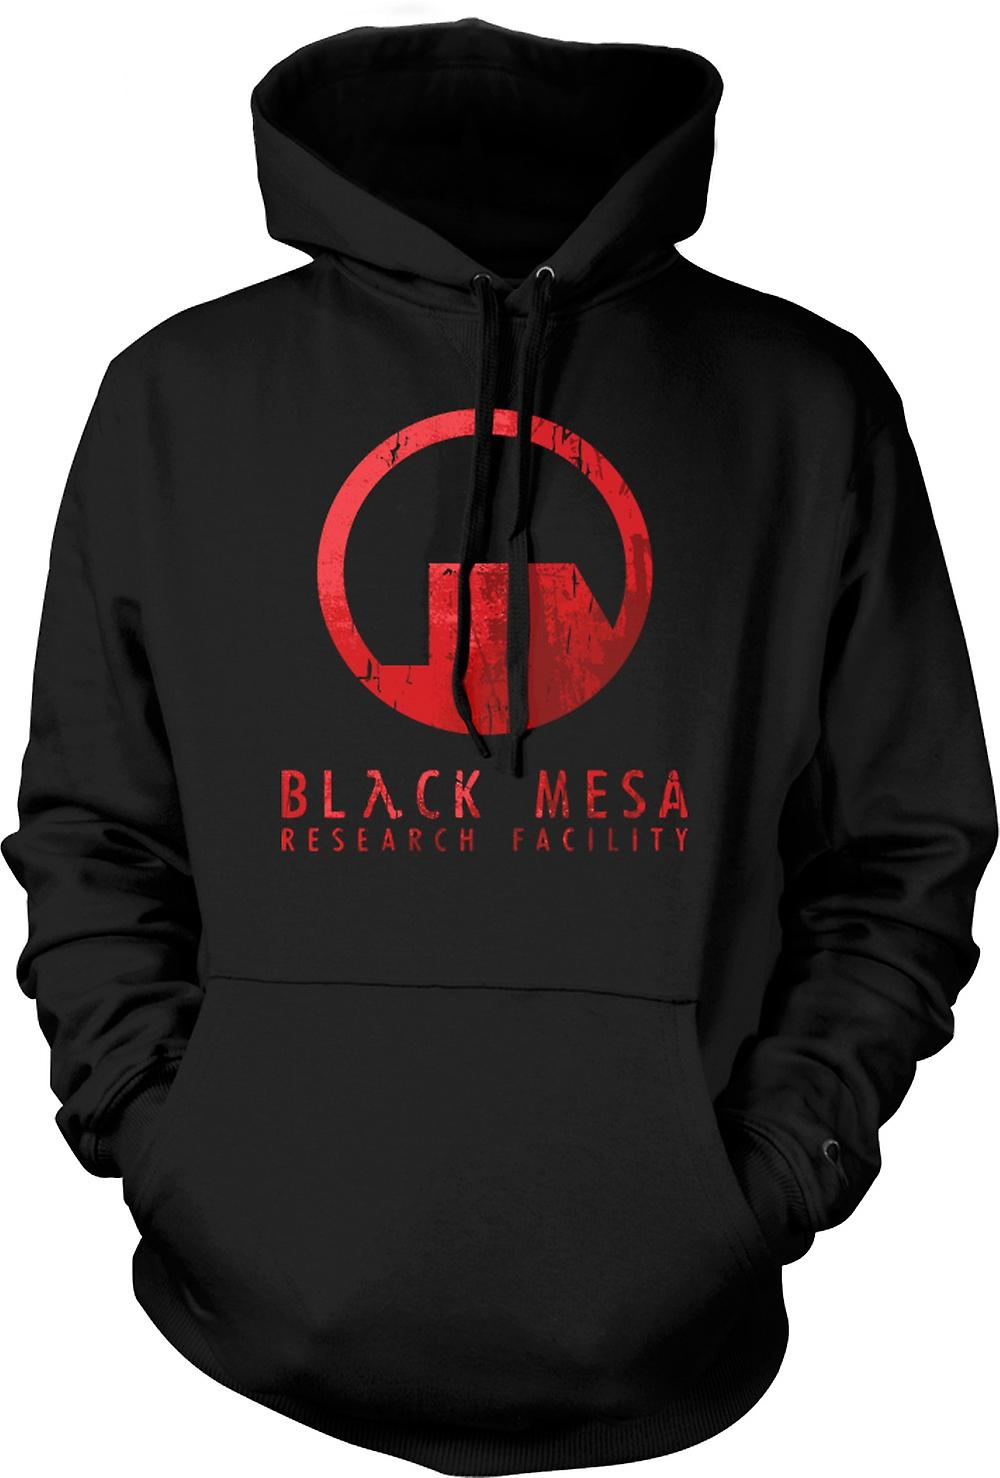 Mens Hoodie - Black Mesa Research Facility BMRF - Gamer